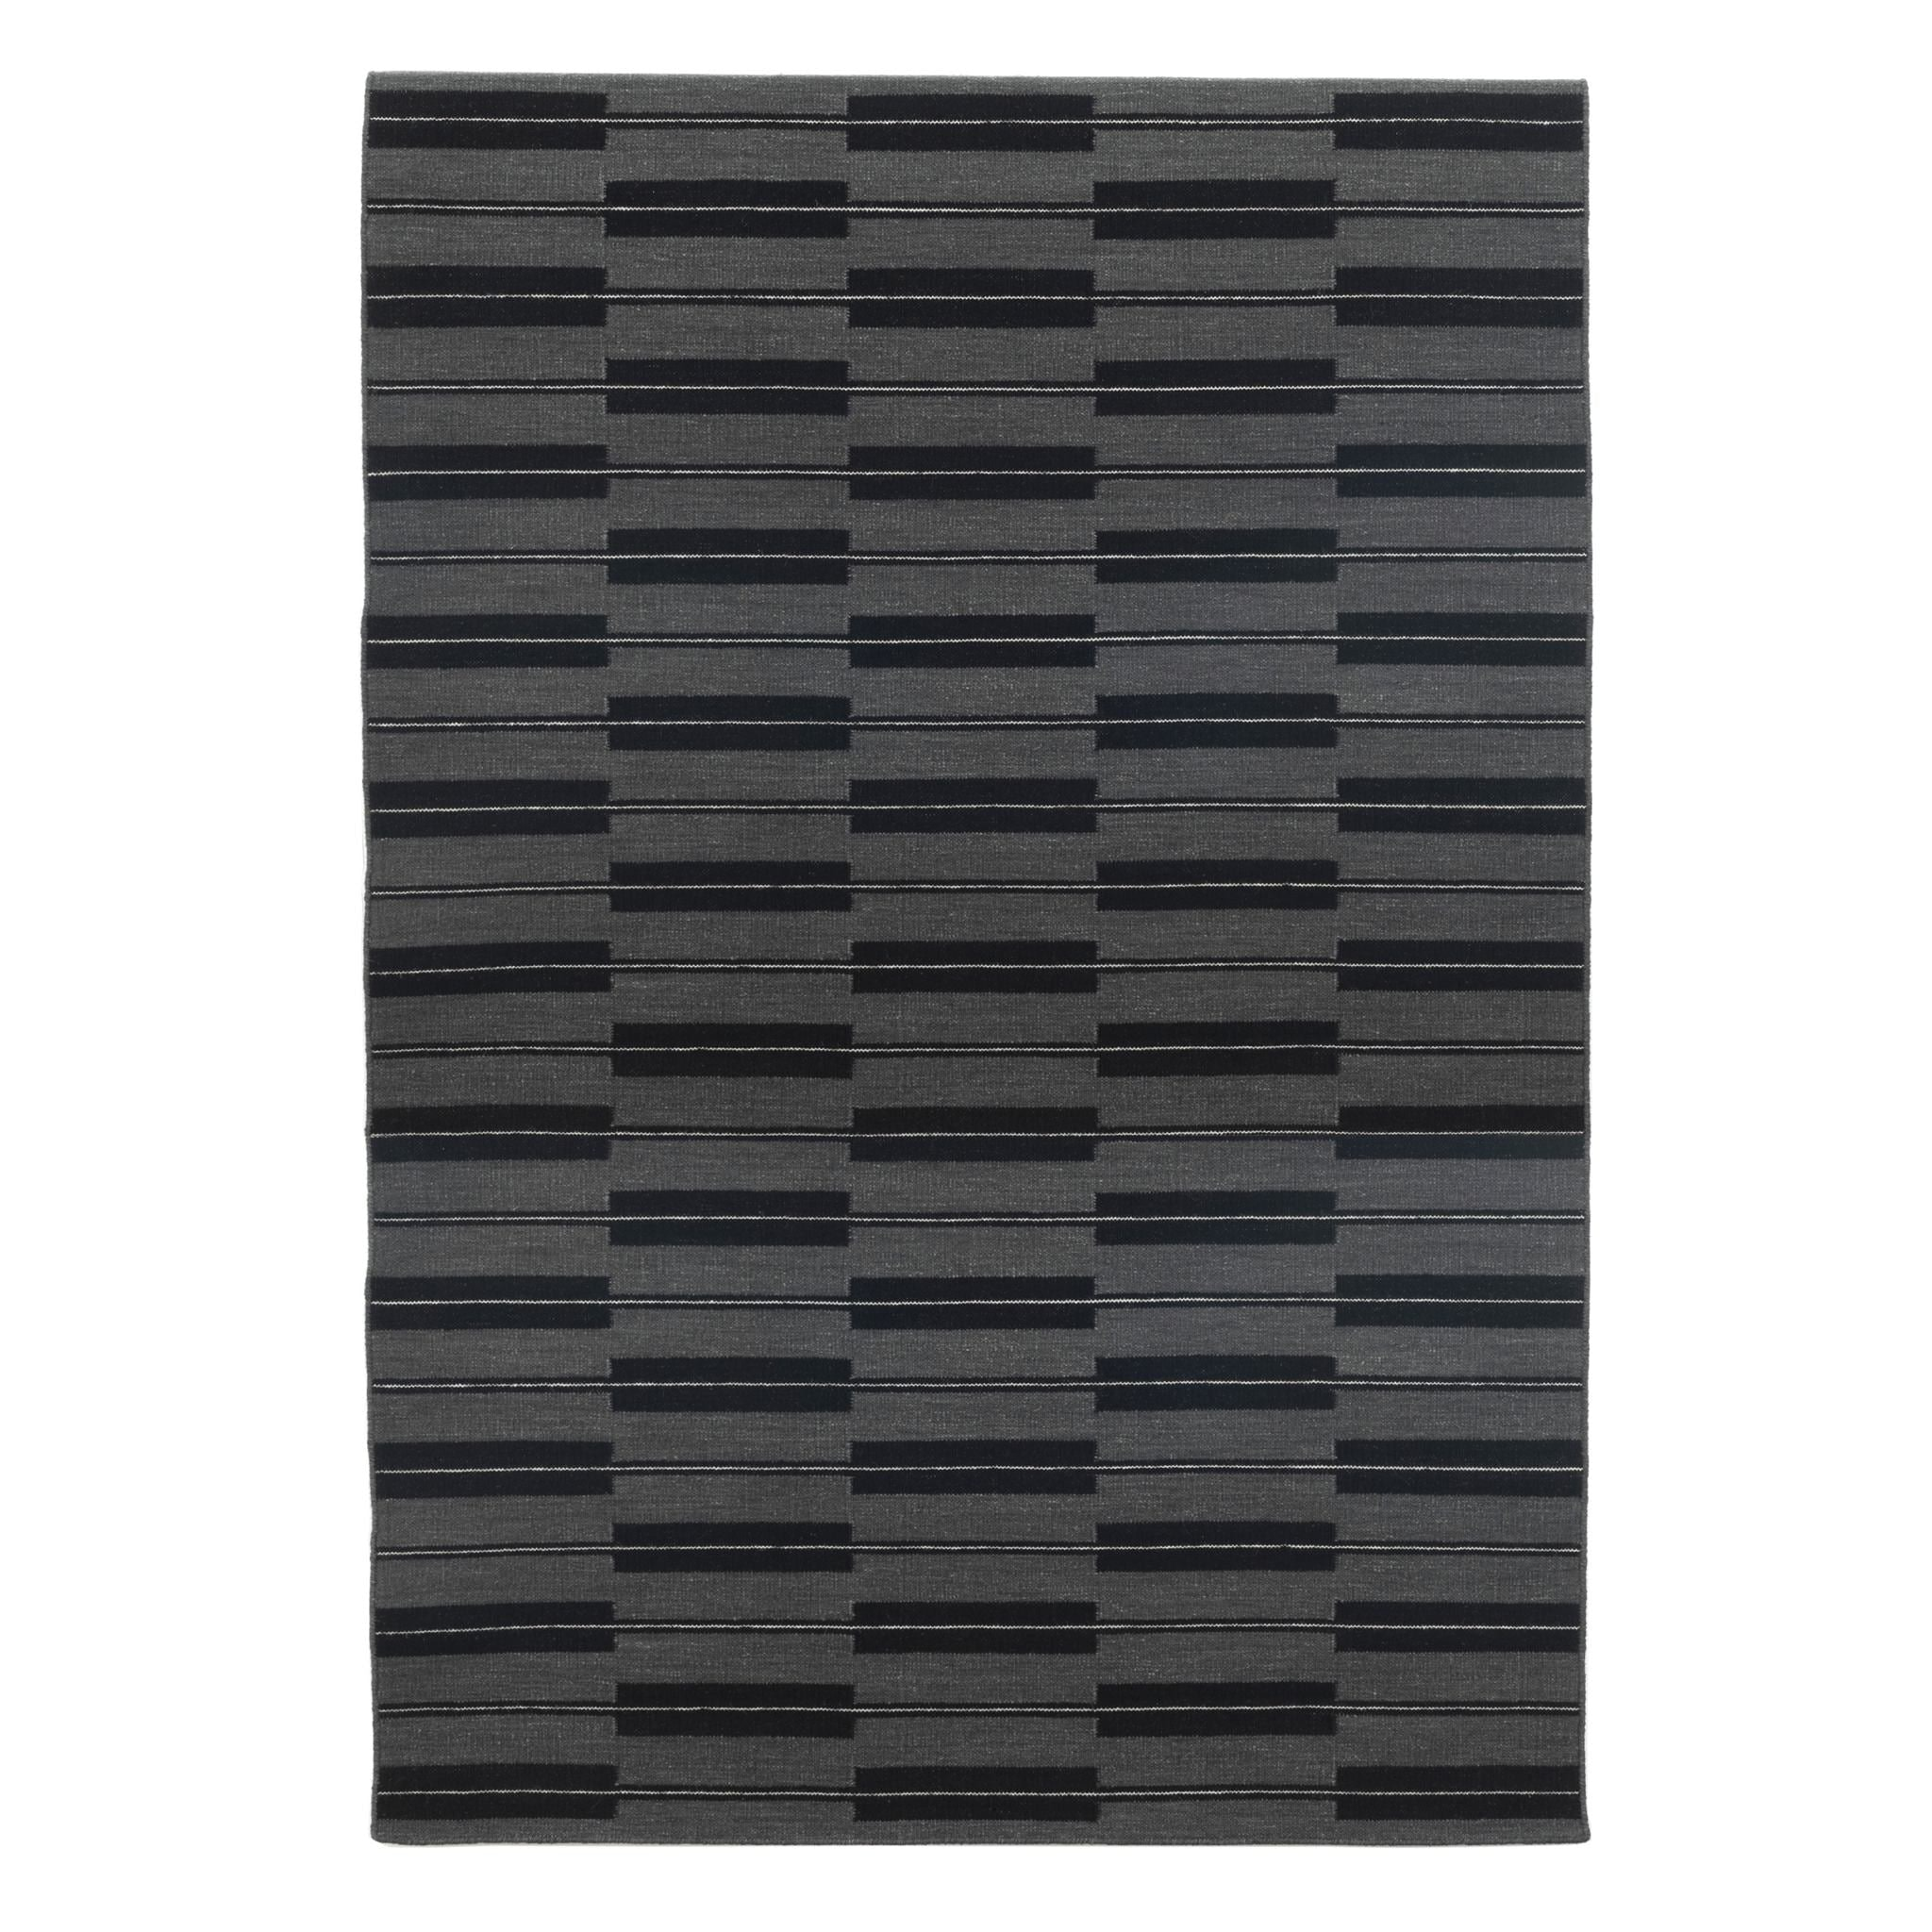 Spindle Rug by Case